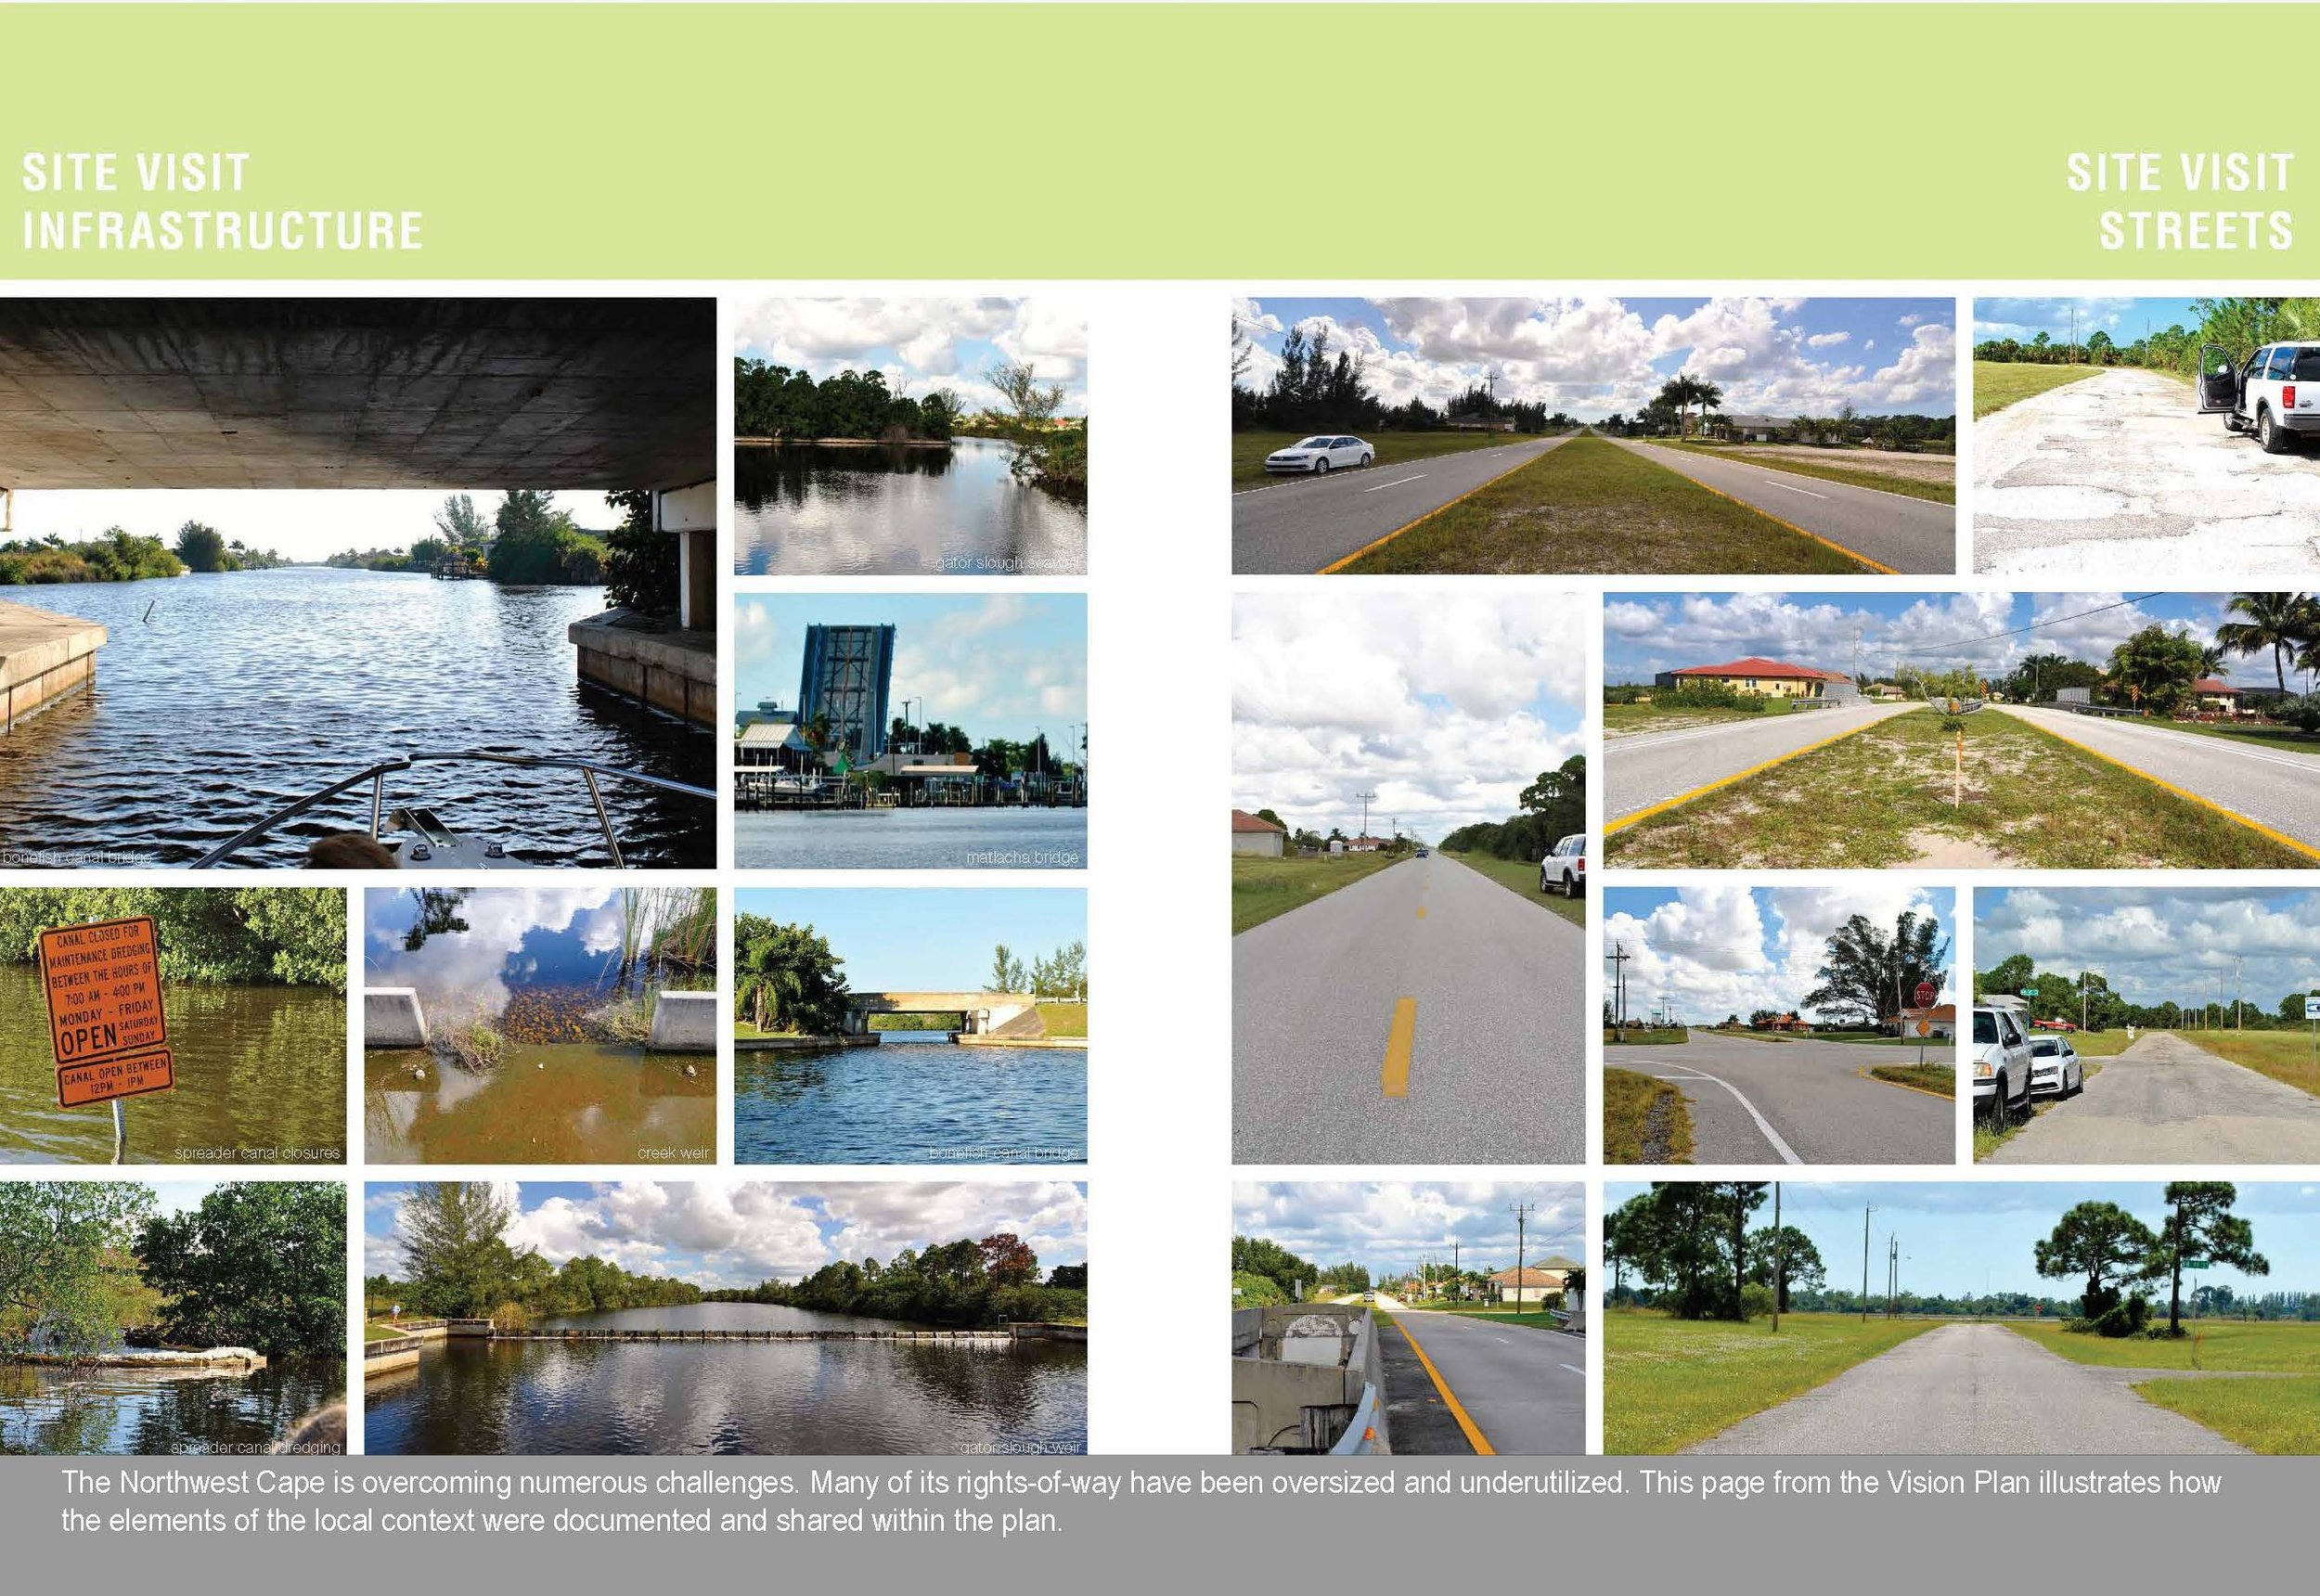 CapeCoral_SubmittalSummary_2017_FLASLA_Page_08.jpg